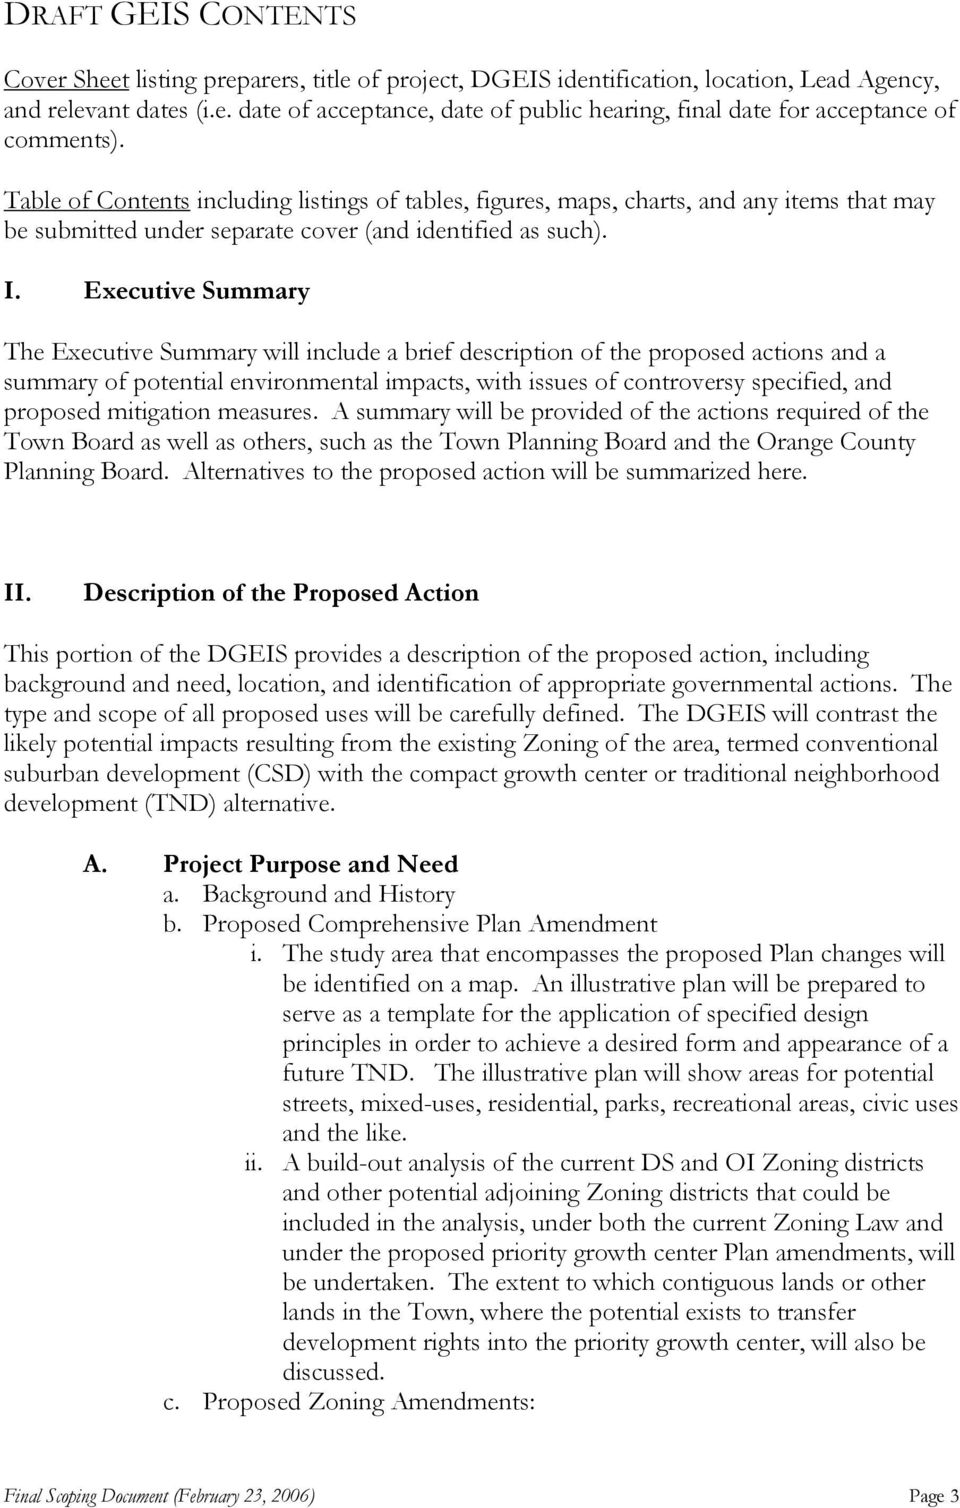 Executive Summary The Executive Summary will include a brief description of the proposed actions and a summary of potential environmental impacts, with issues of controversy specified, and proposed